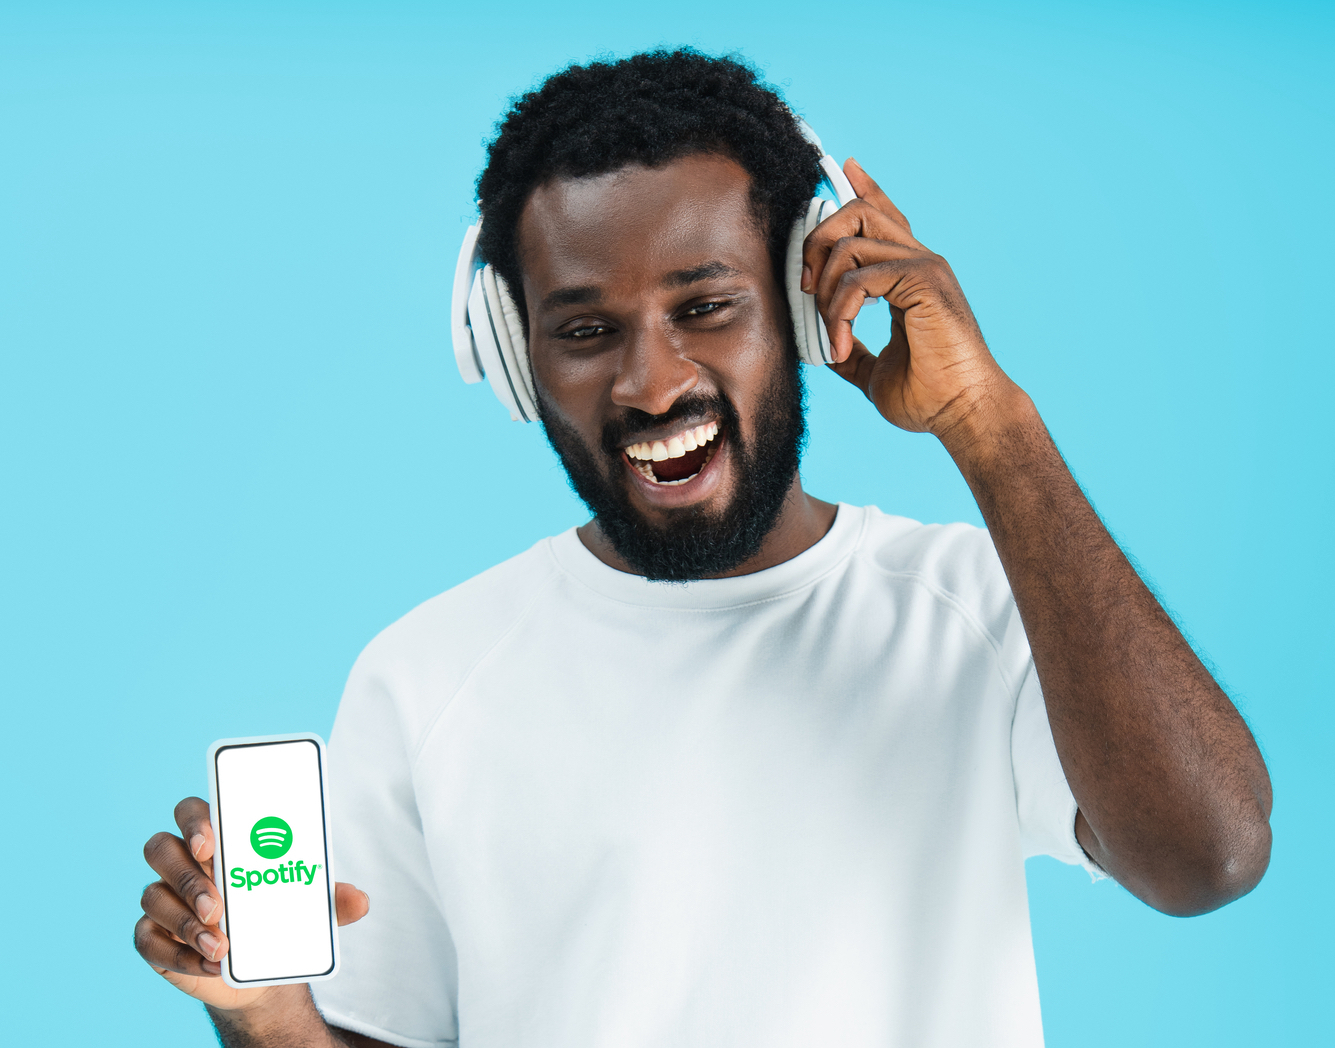 Spotify Expands to Jamaica